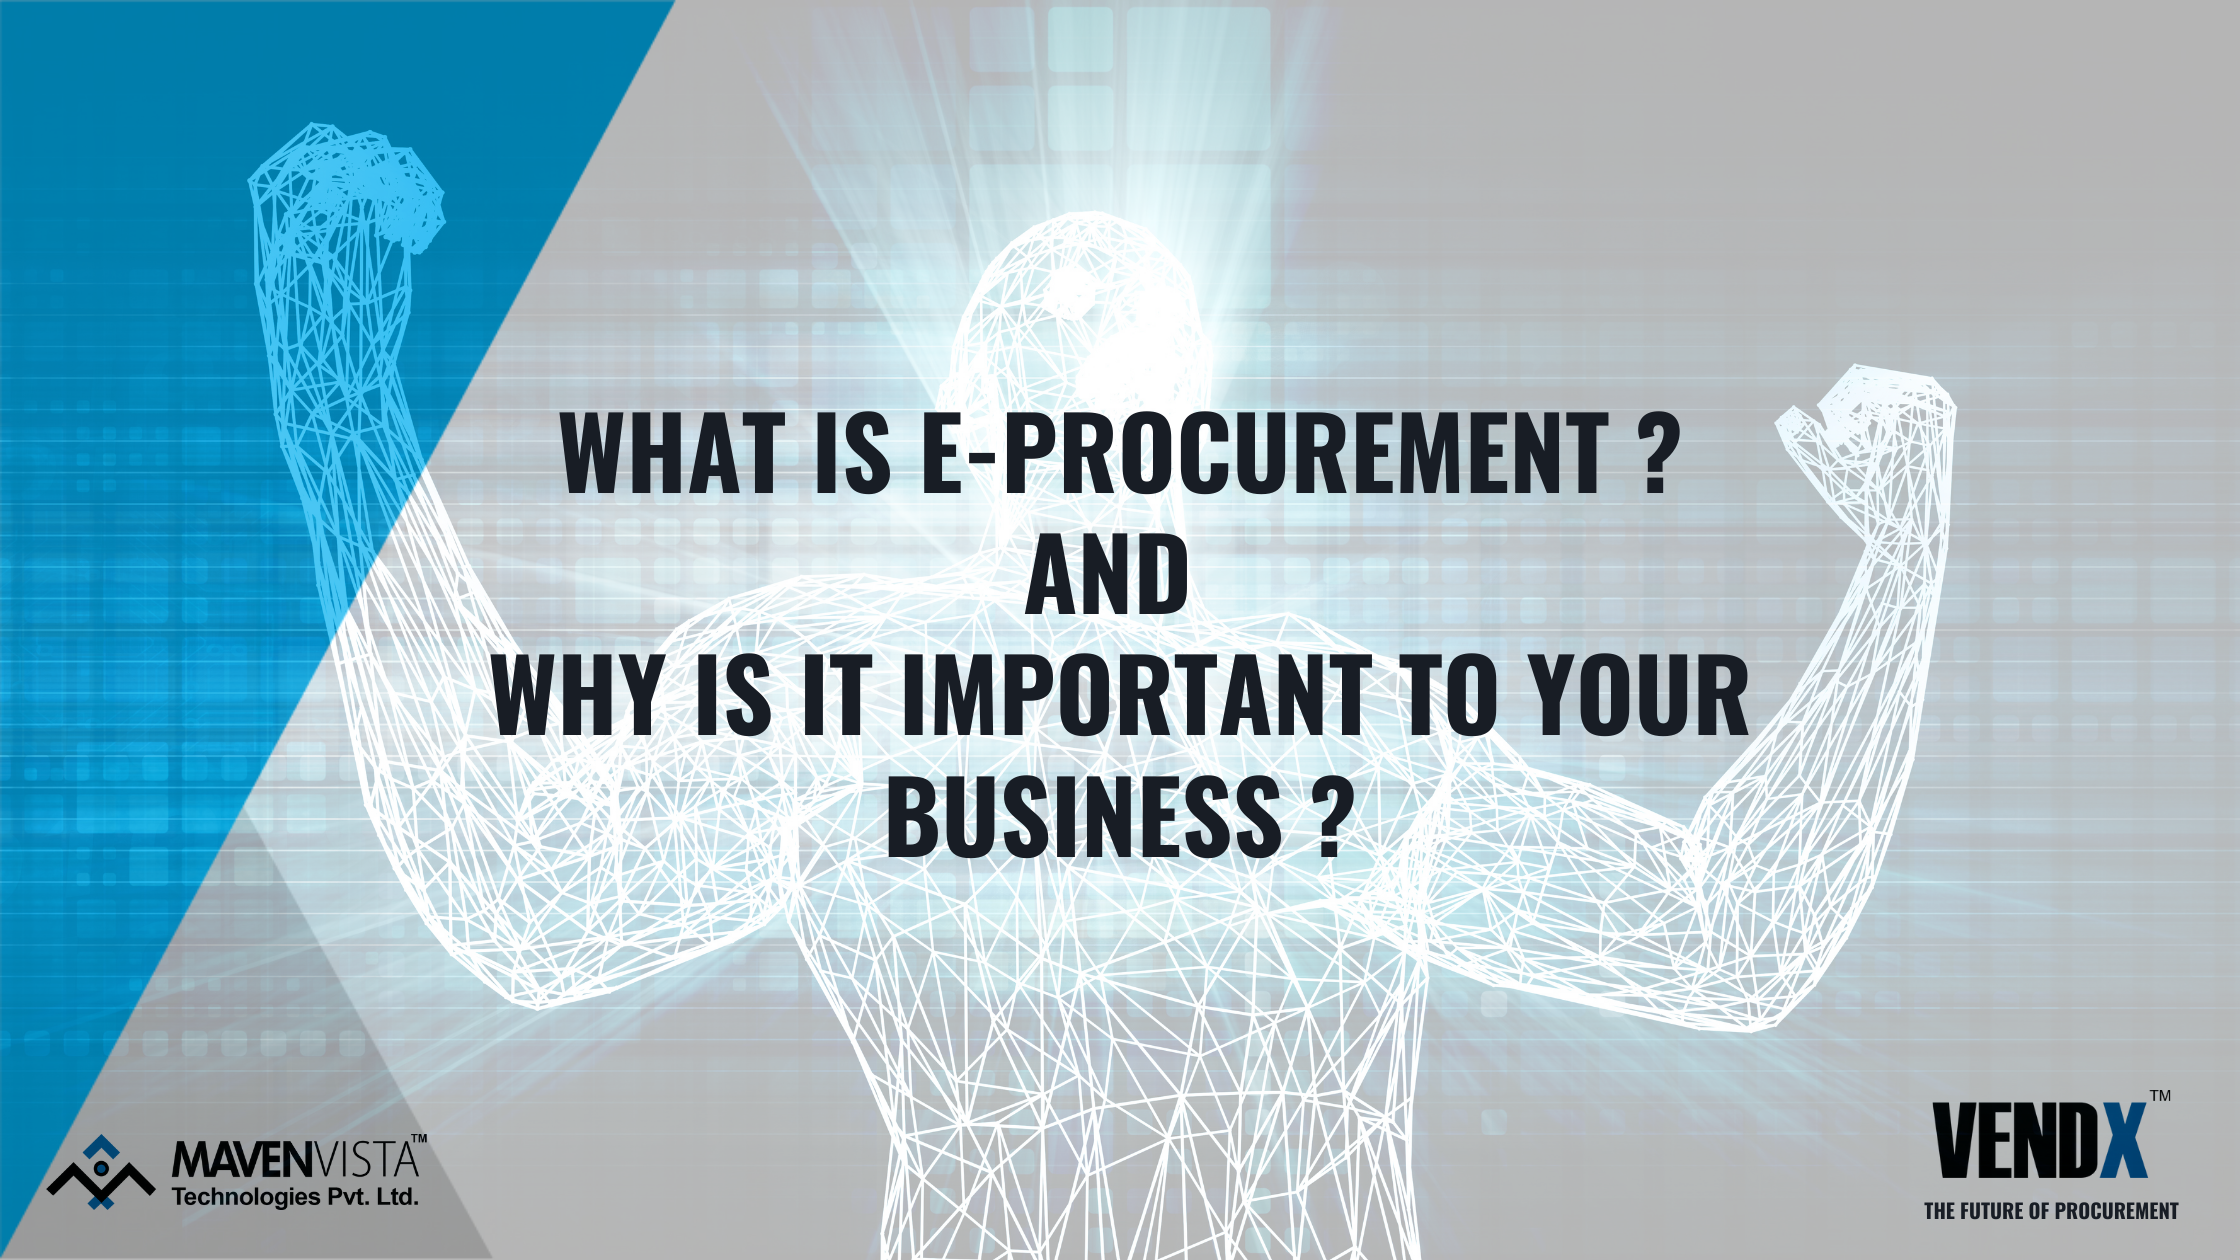 What is E-Procurement and Why is it Important to Your Business?